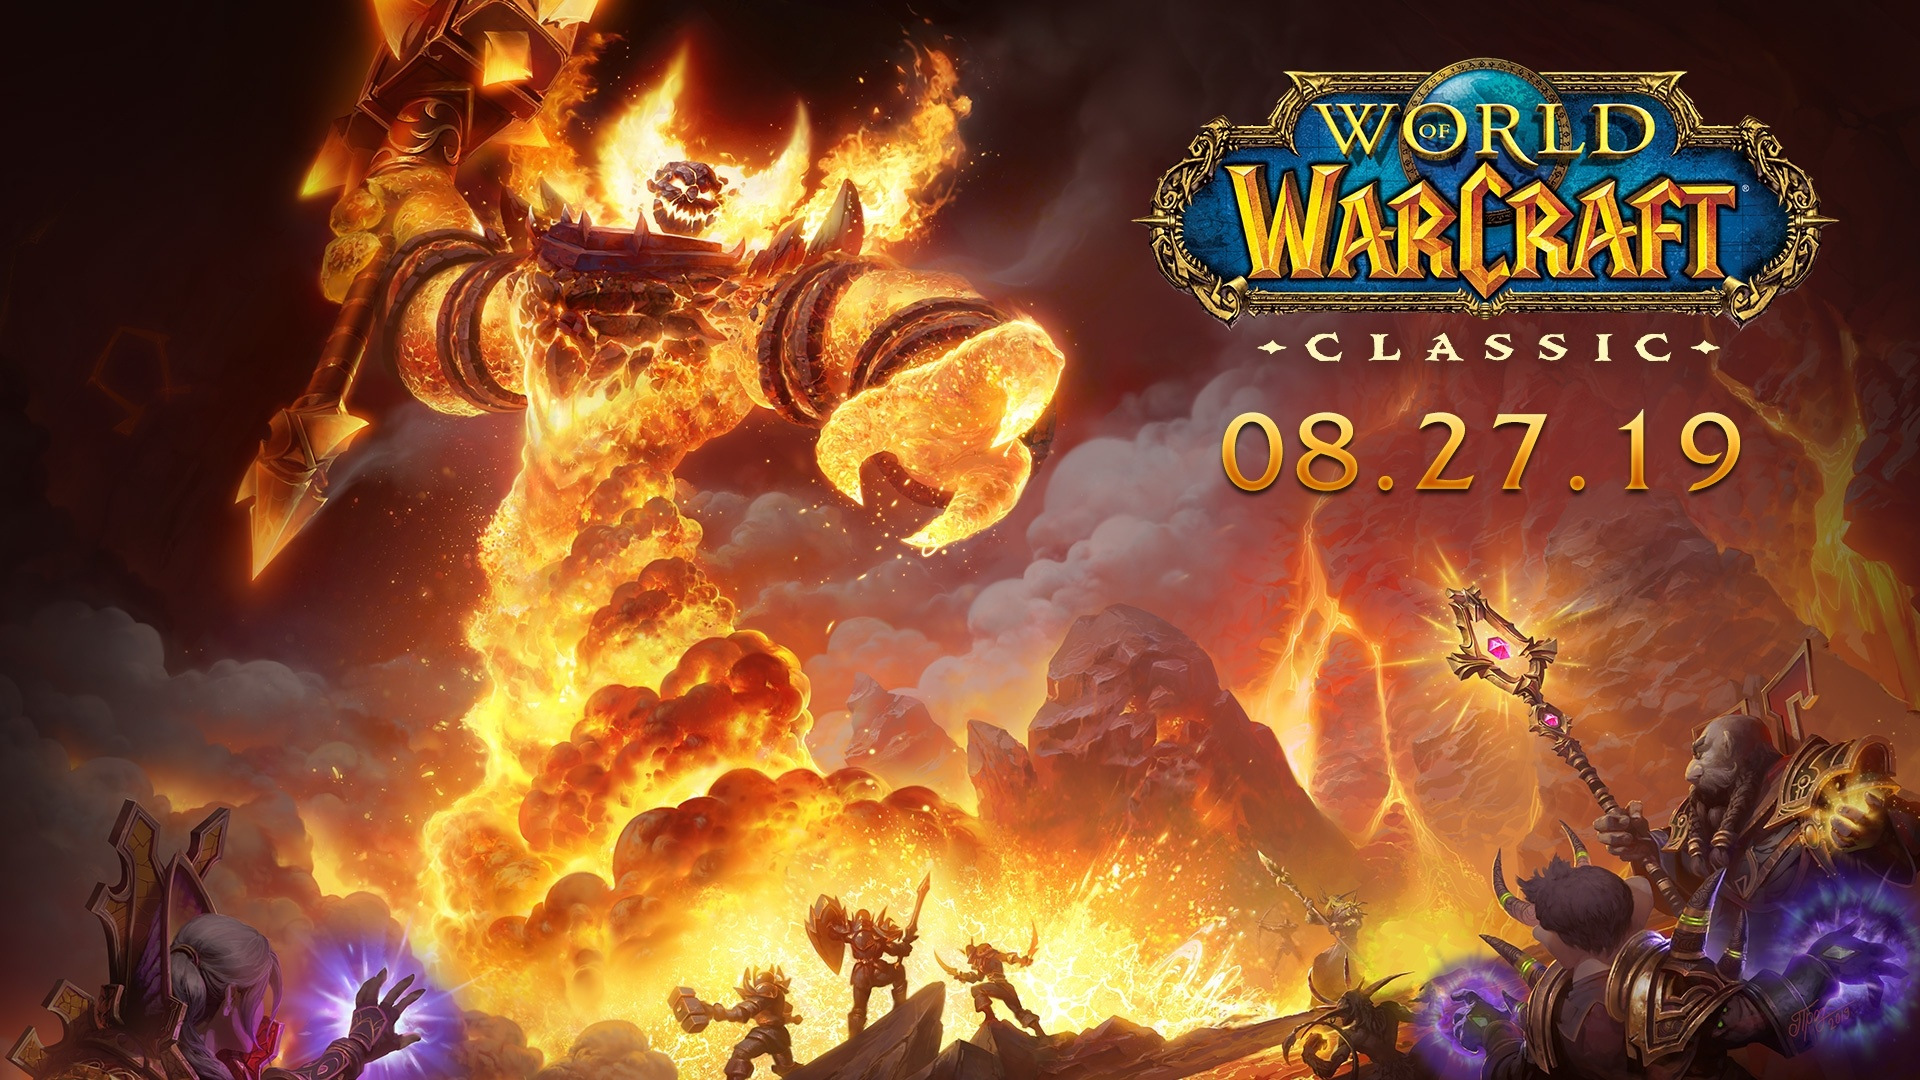 'World of Warcraft Classic' release date news